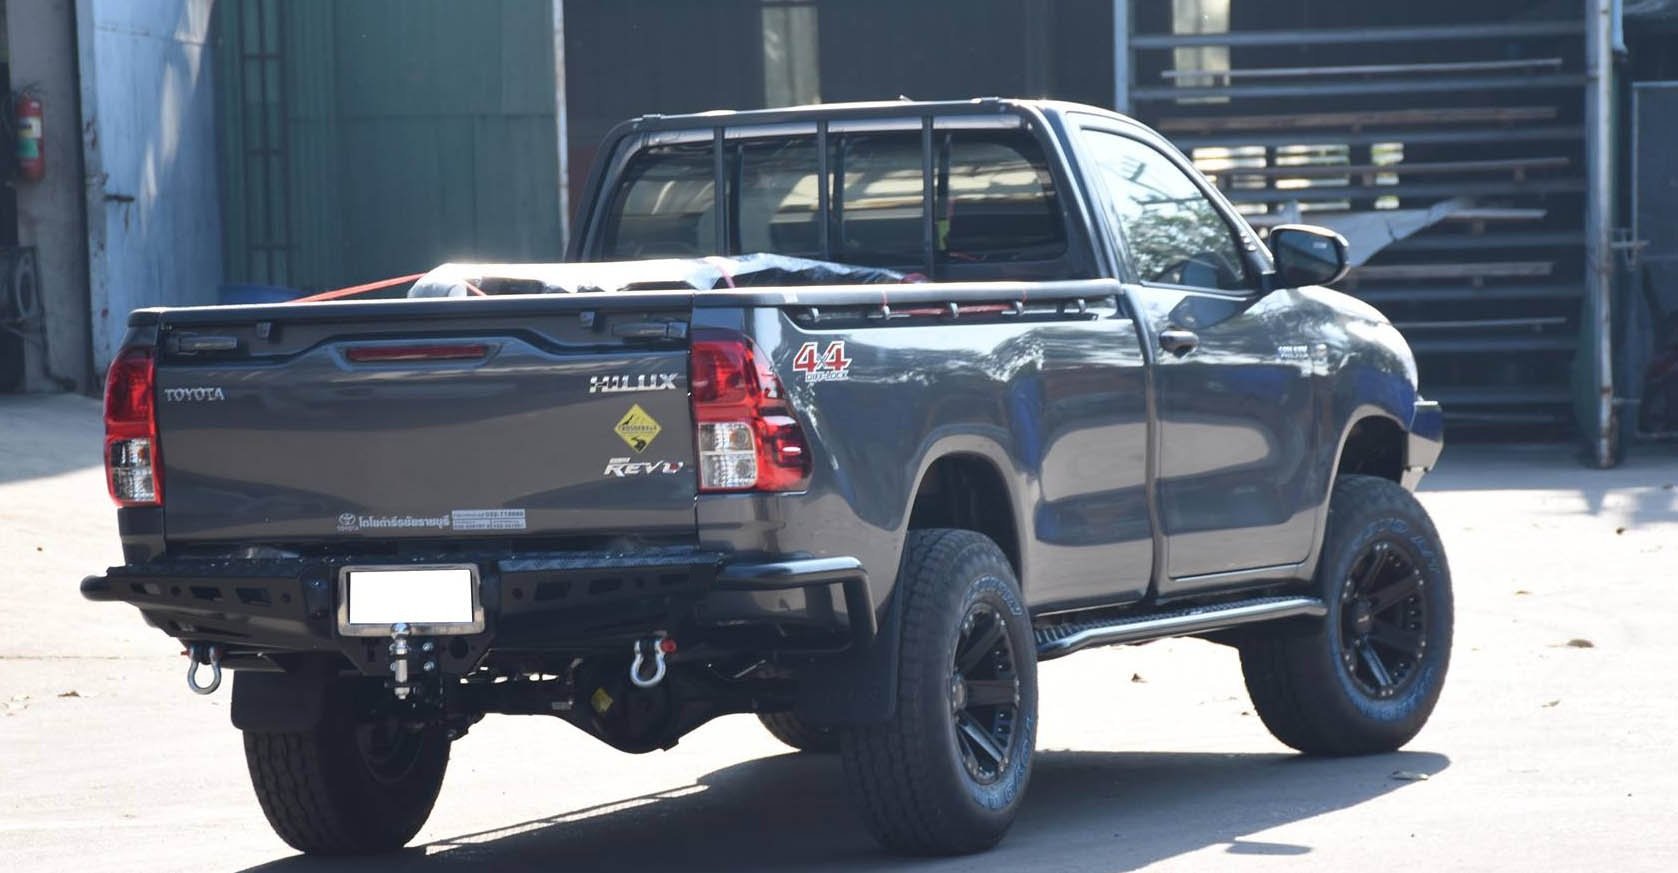 Black Steel Rear Bumper Style With Tow Hitch Receiver Worldstyling Com